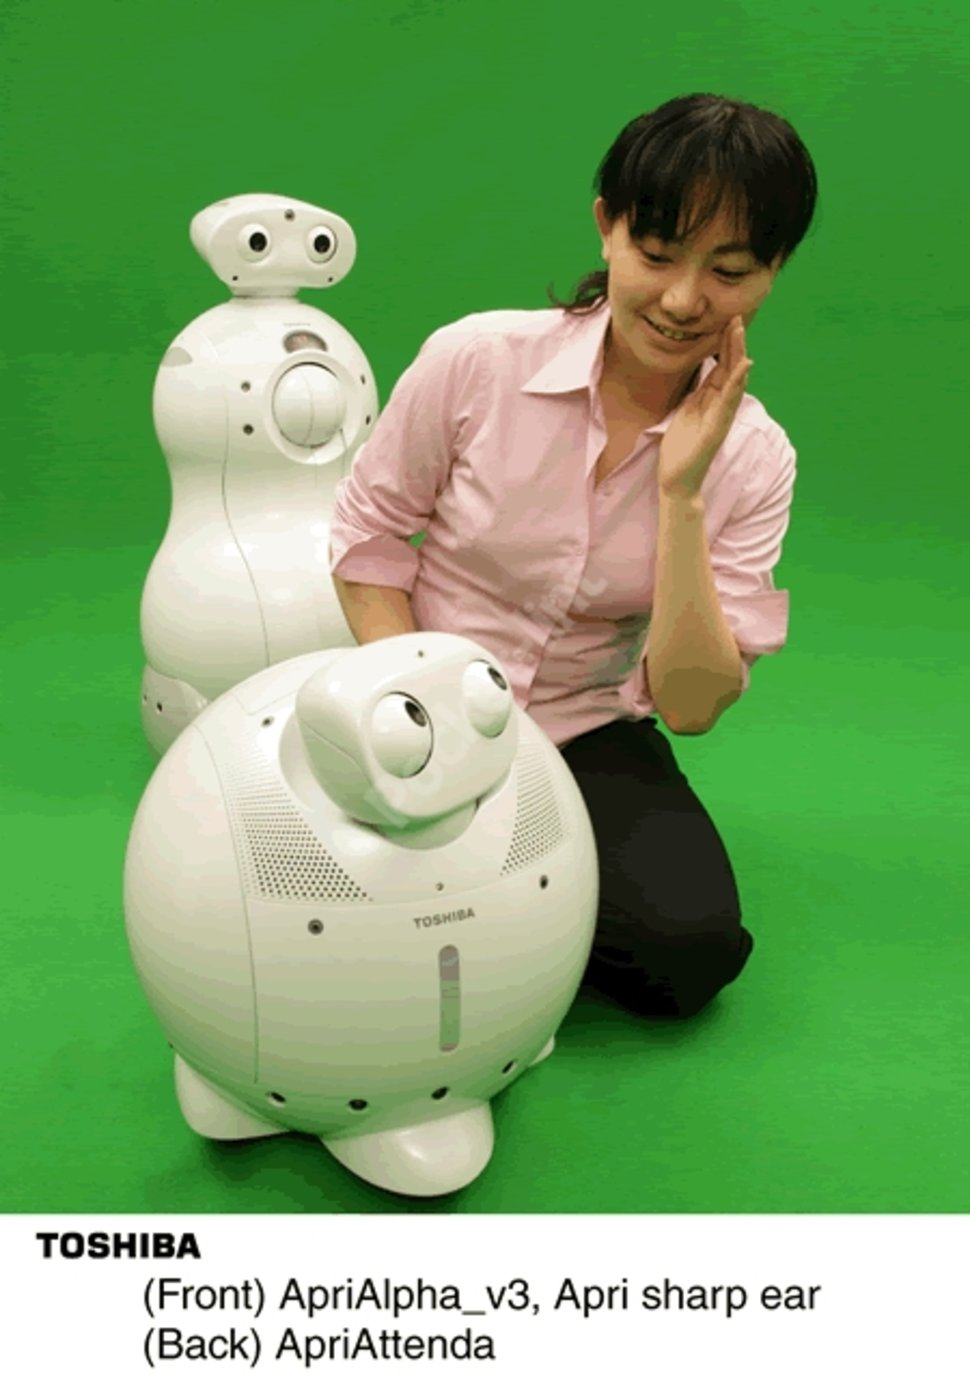 toshiba welcomes apriattenda to robot family image 1